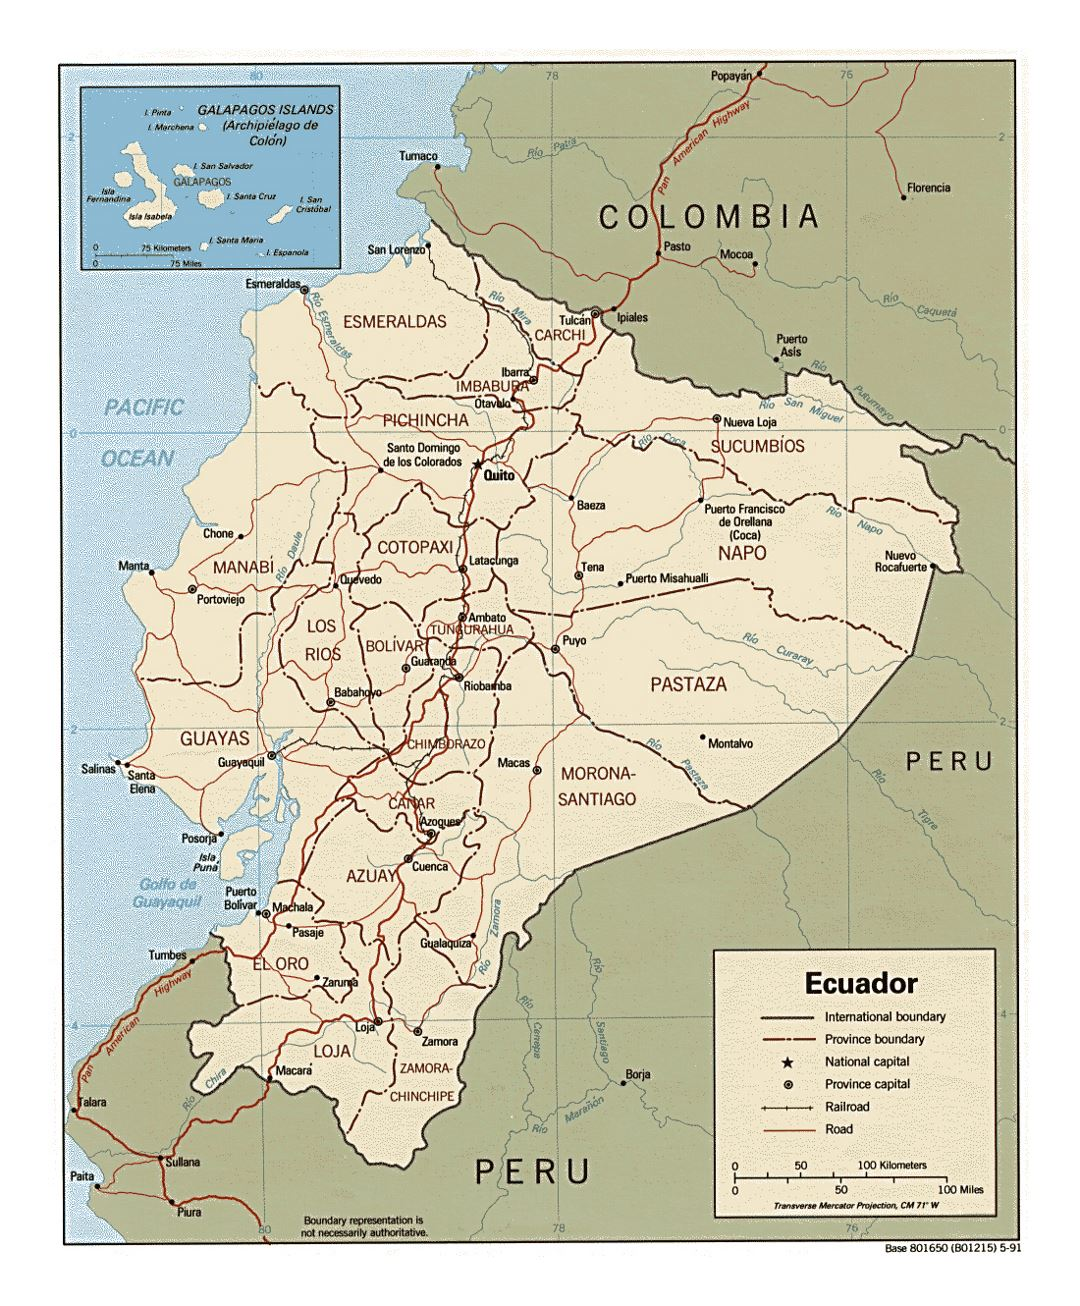 Detailed political and administrative map of Ecuador with major roads and major cities - 1991